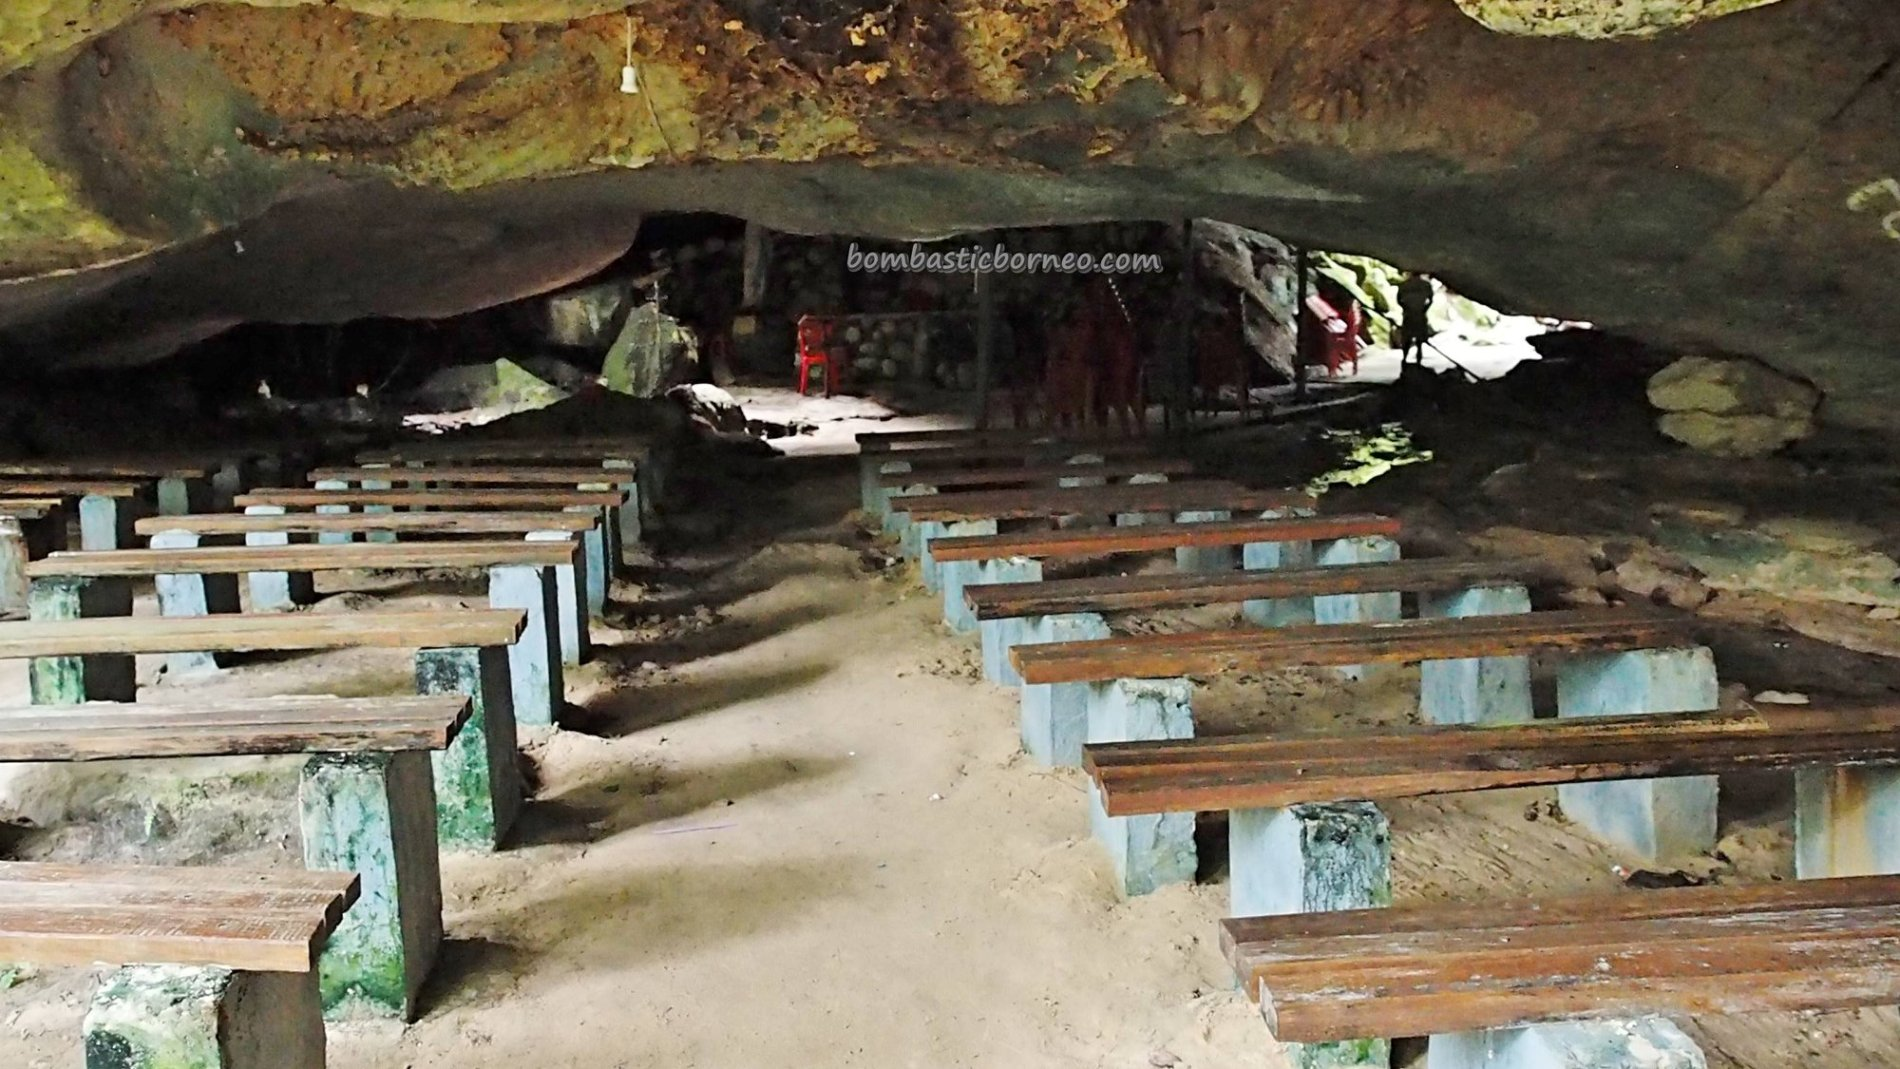 Mother Mary Grotto, Gua Maria Santok, nature, destination, Indonesia, West Kalimantan, Sajingan Besar, Sambas, Desa Santaban, Dusun Sasak, Obyek wisata, Tourism, travel guide, Transborneo